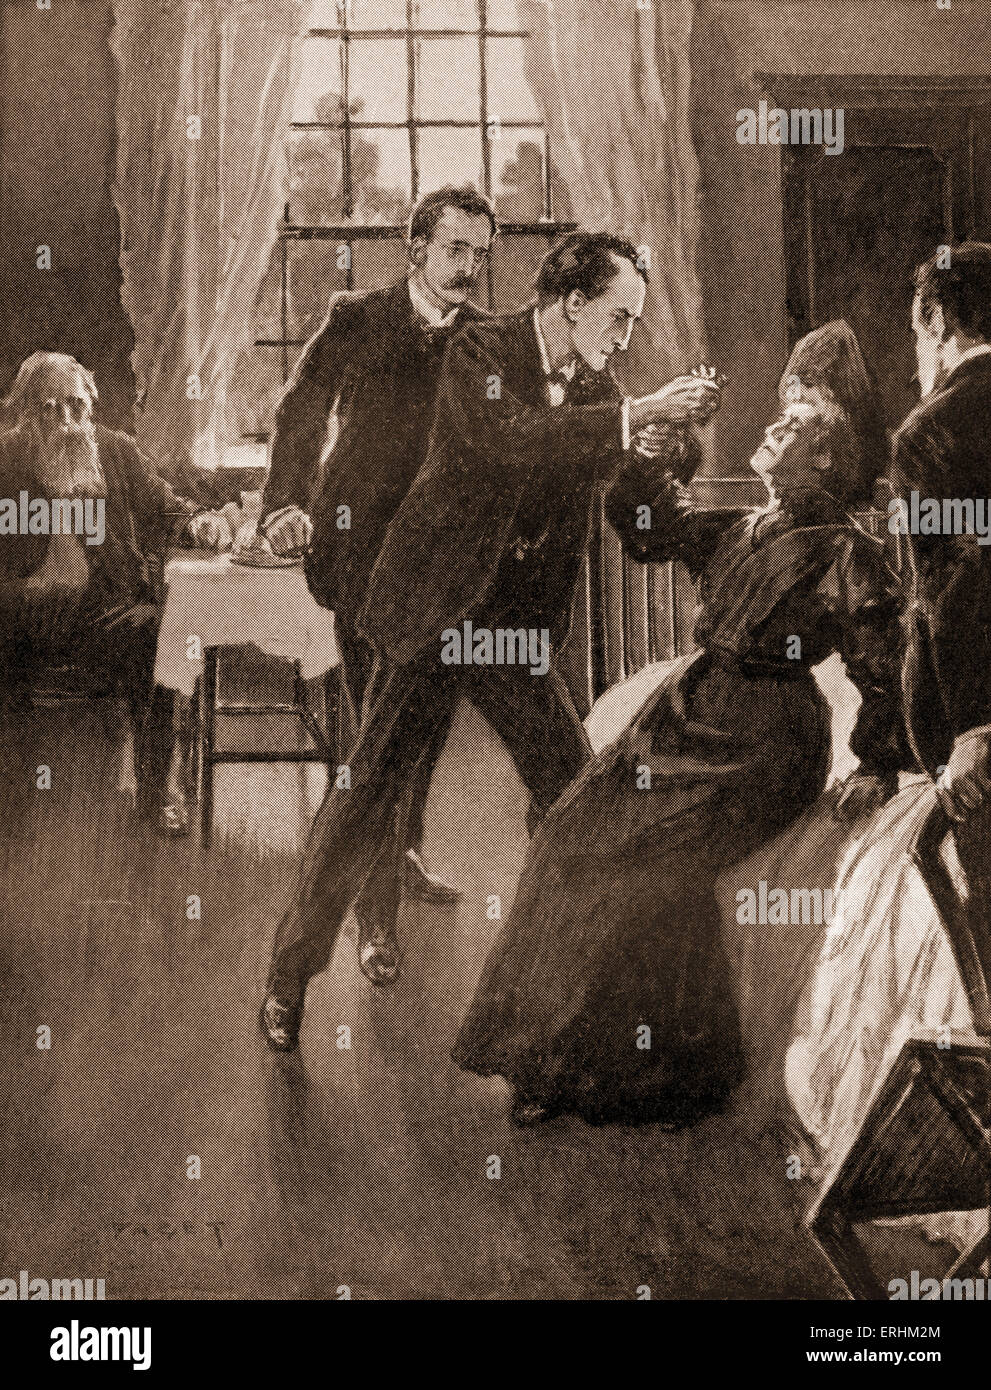 'The Return of Sherlock Holmes' by Sir Arthur Conan Doyle - Holmes trying to prevent the Russian woman Anna - Stock Image